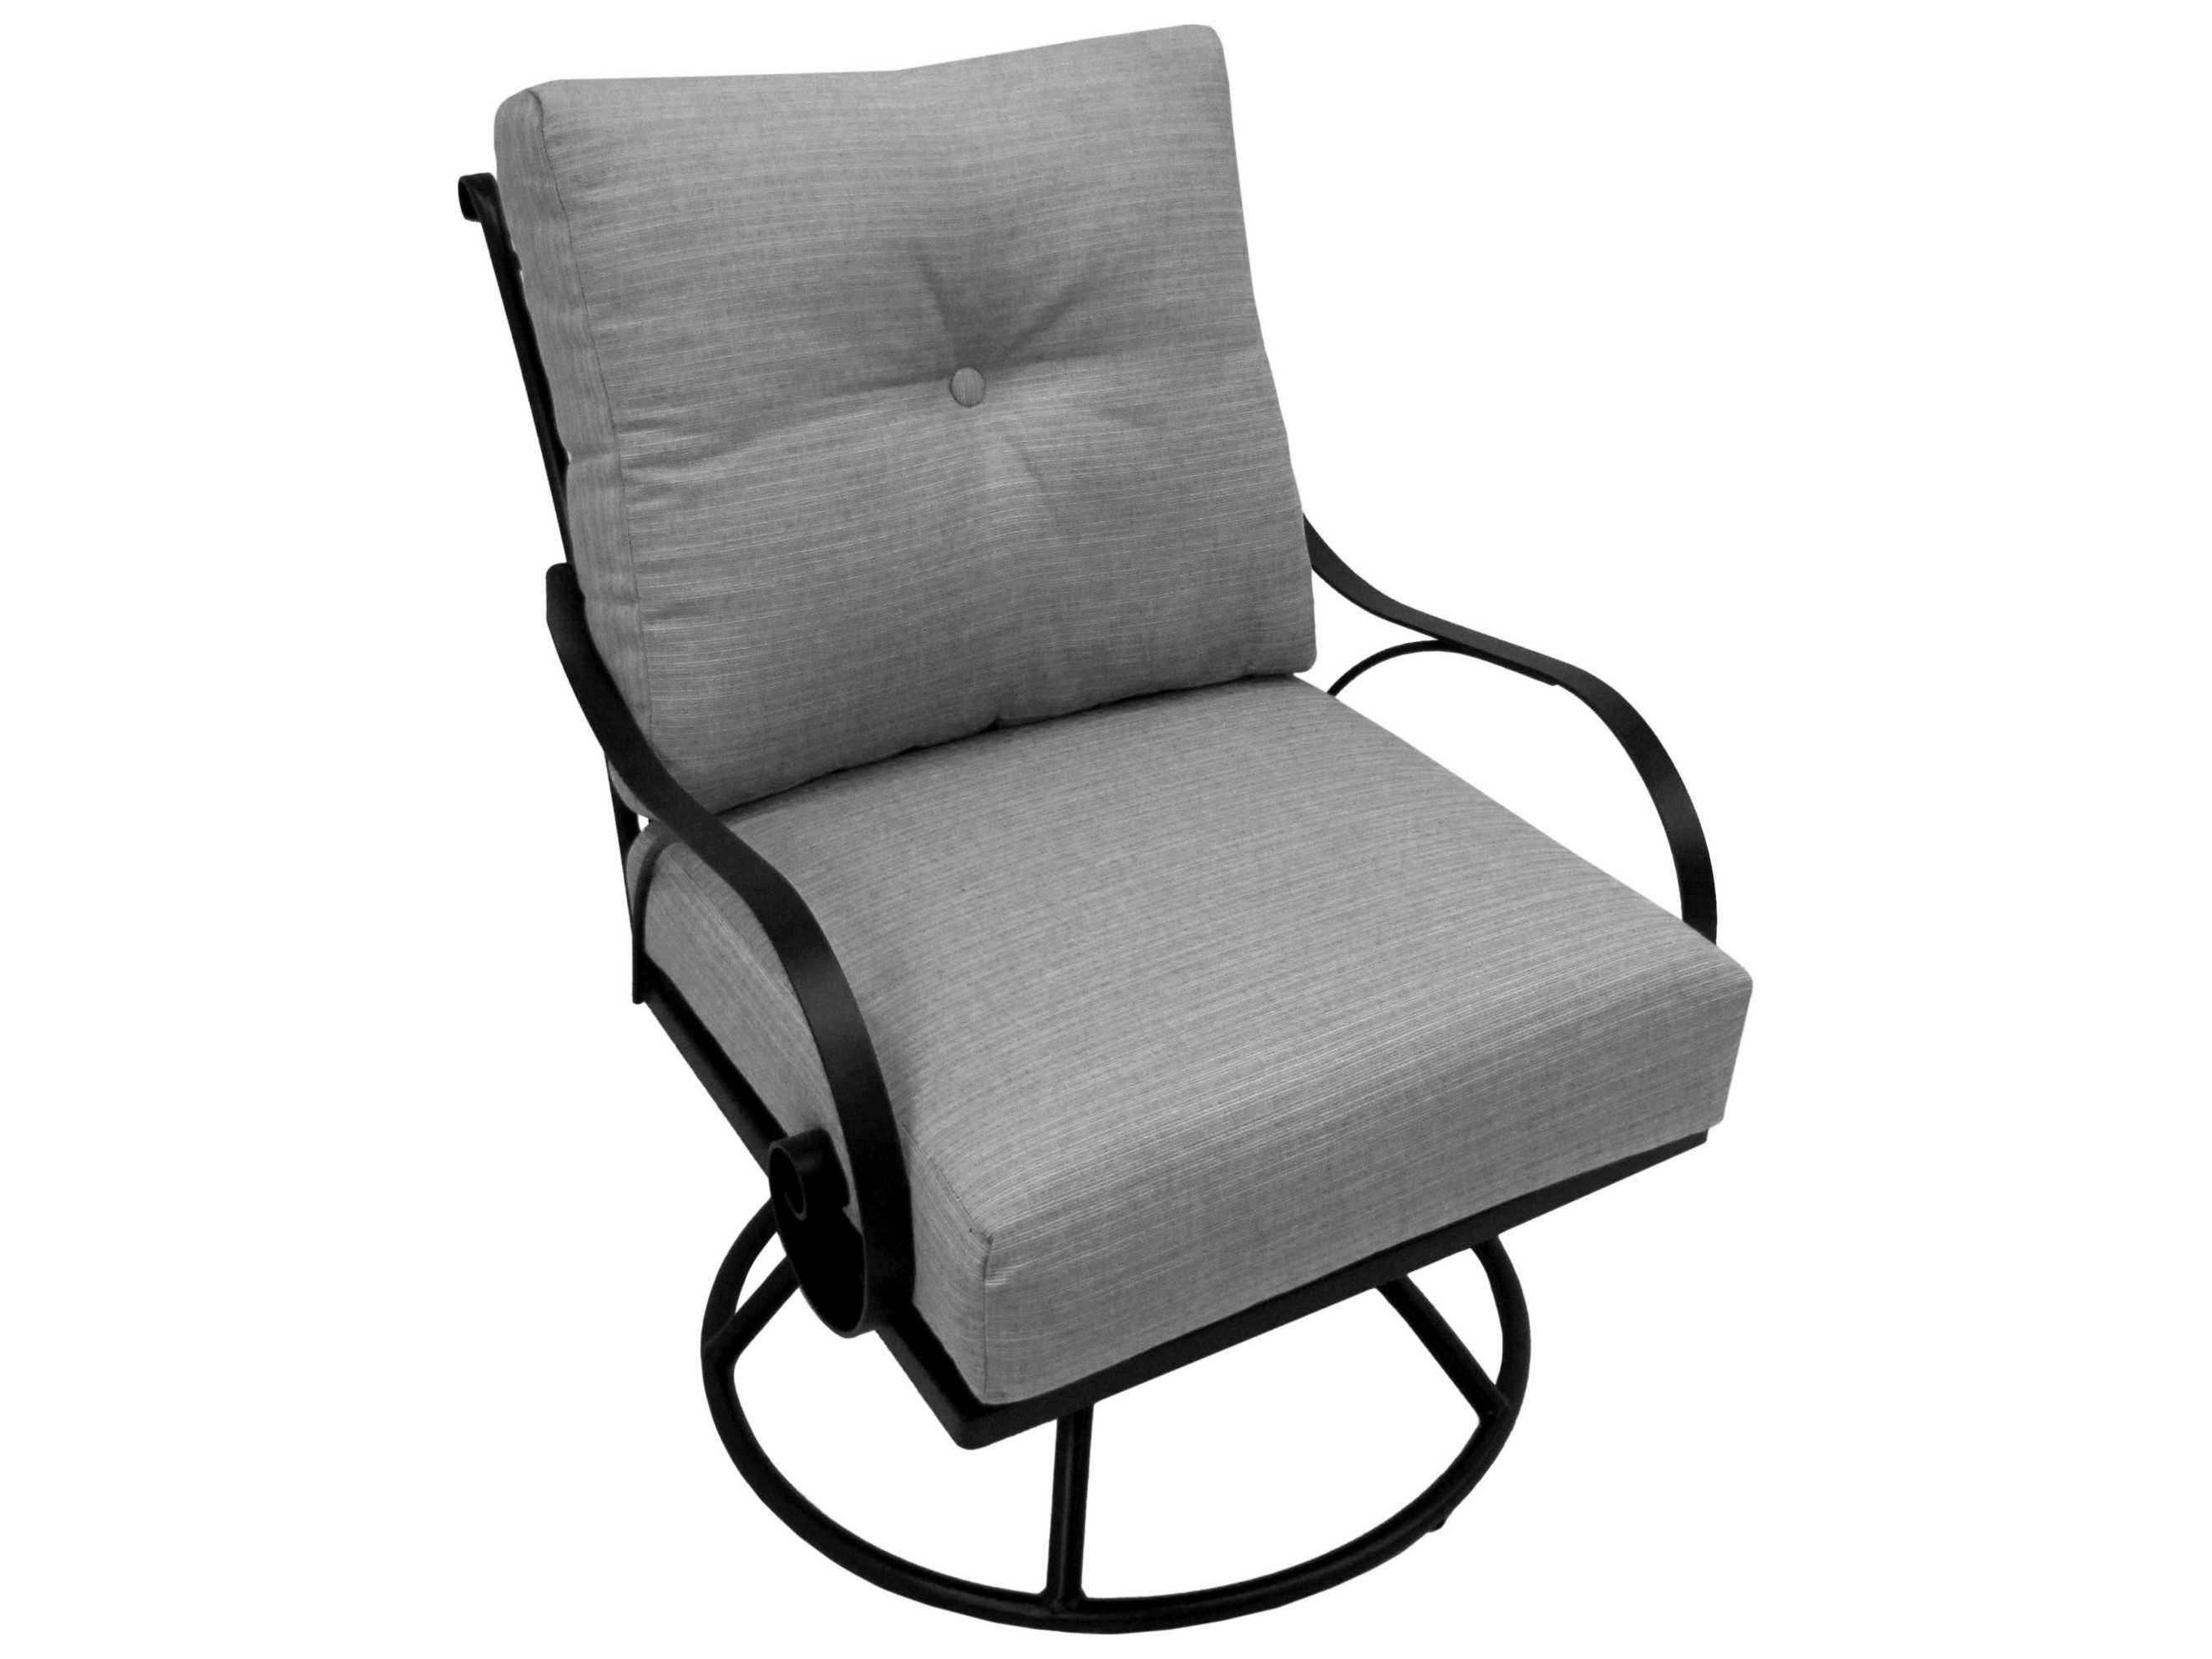 Meadowcraft Monticello Deep Seating Wrought Iron Swivel